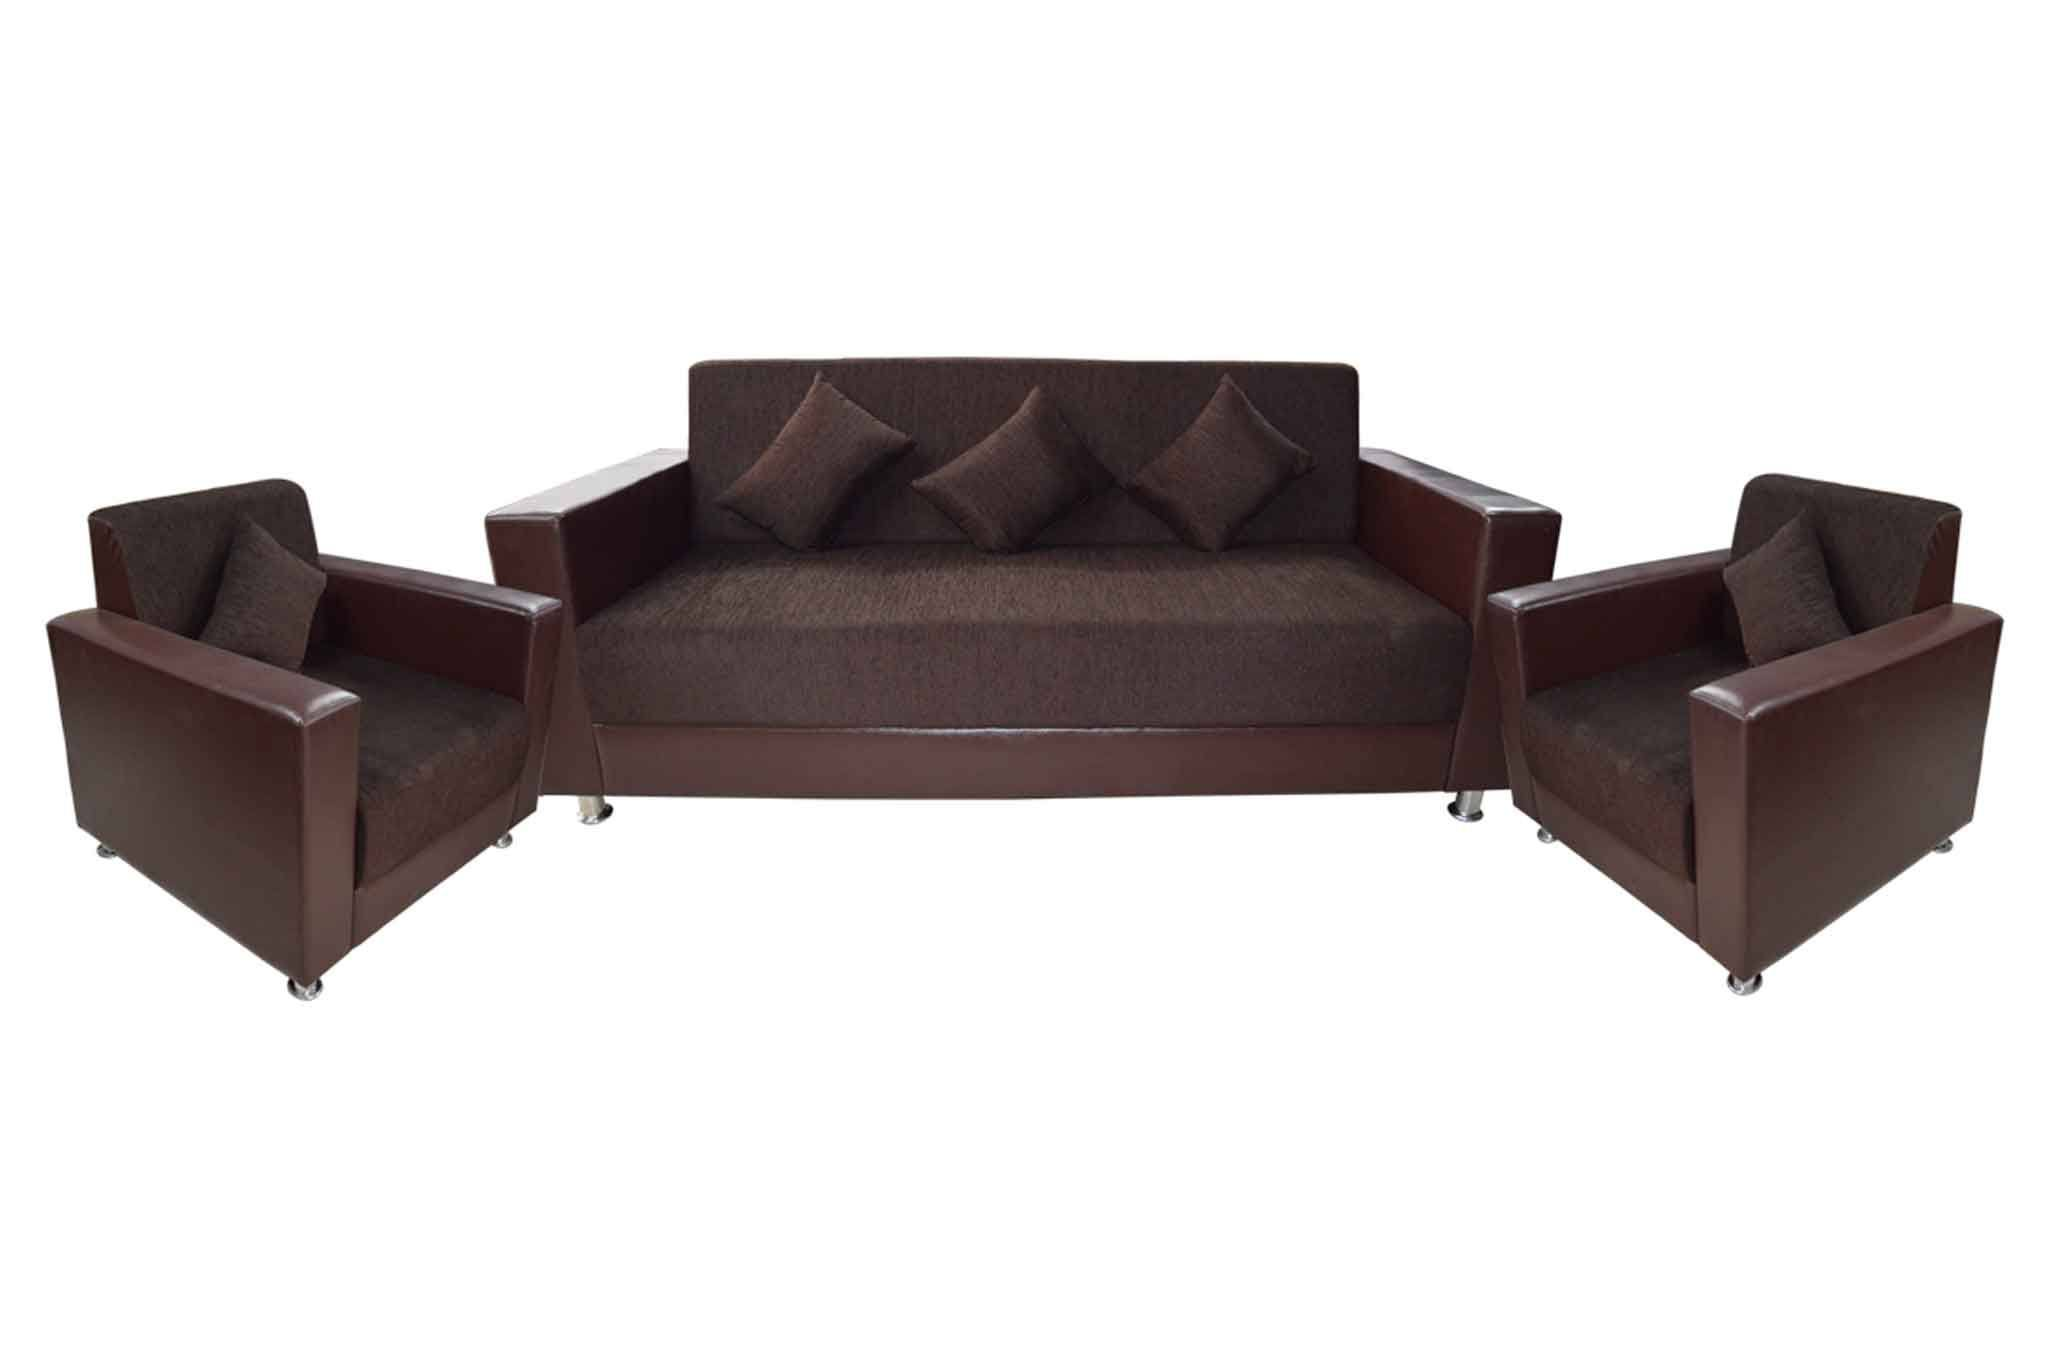 Sofa Set Online Klaton Fabric Leatherette 3 1 1 Sofa Set Brown